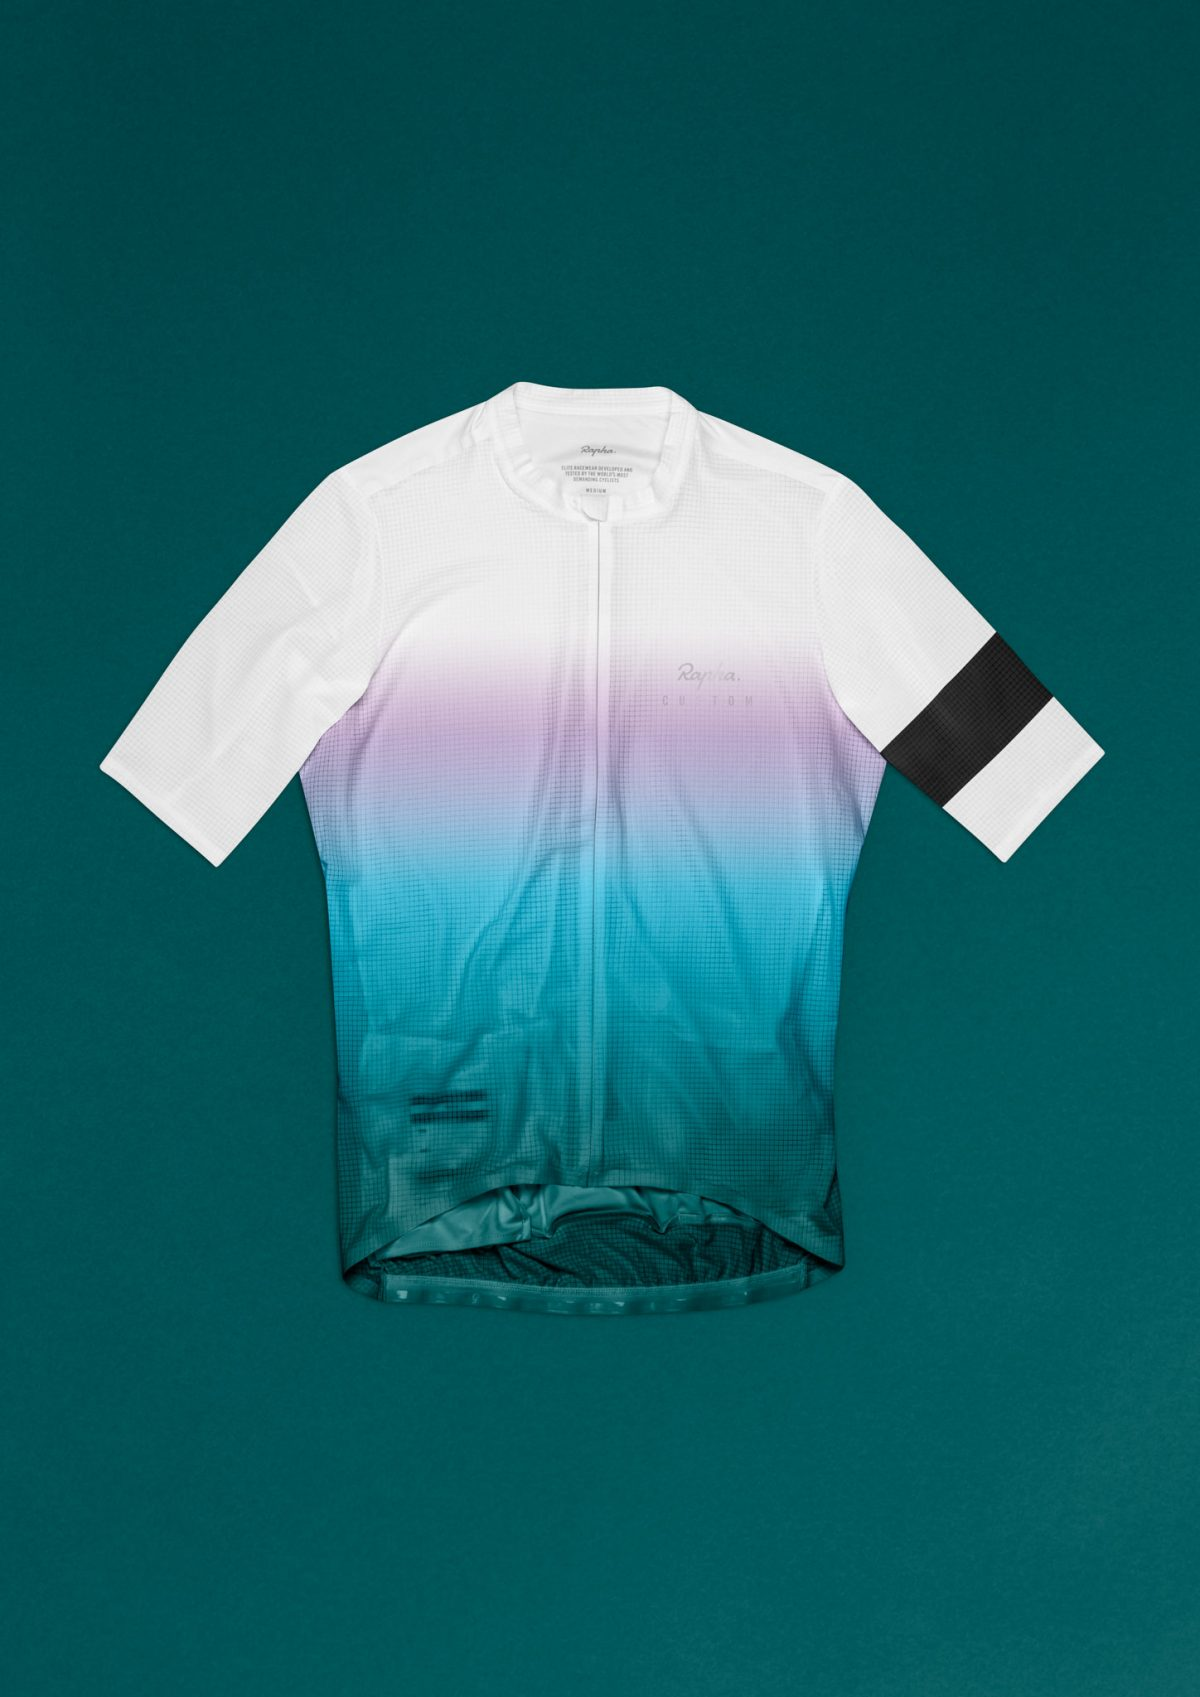 Desire: Rapha Custom – creativity made easy